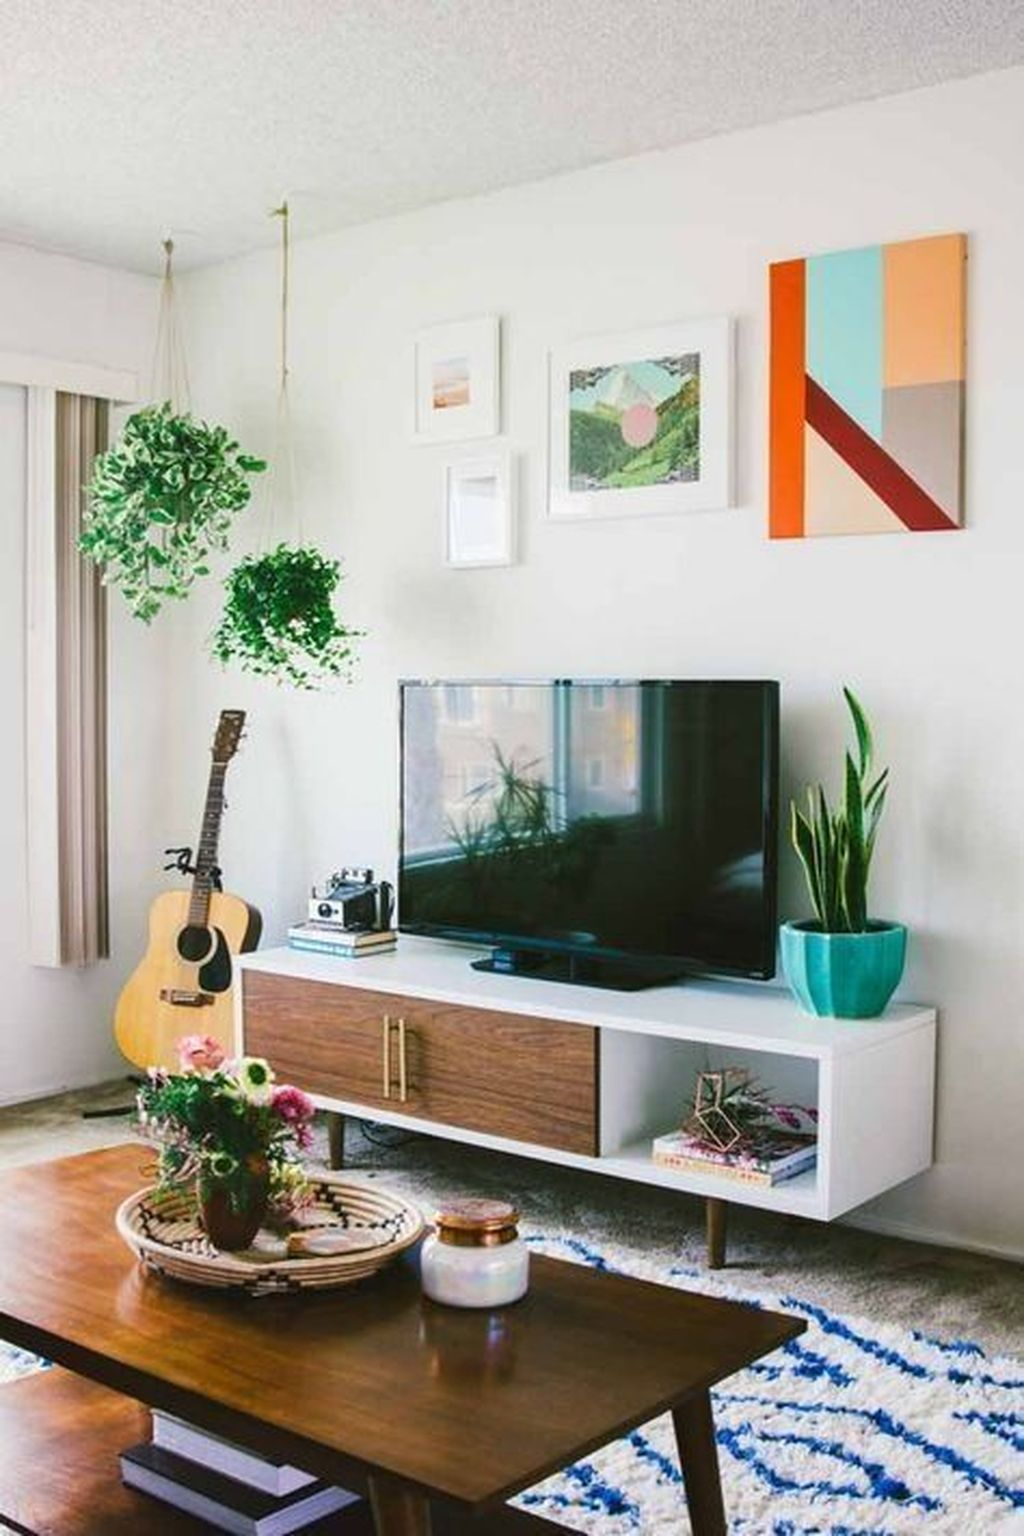 30 Simple Diy Apartment Decorating Ideas On A Budget Trendhmdcr One Bedroom Apartment Apartment Decor Diy Apartment Decor